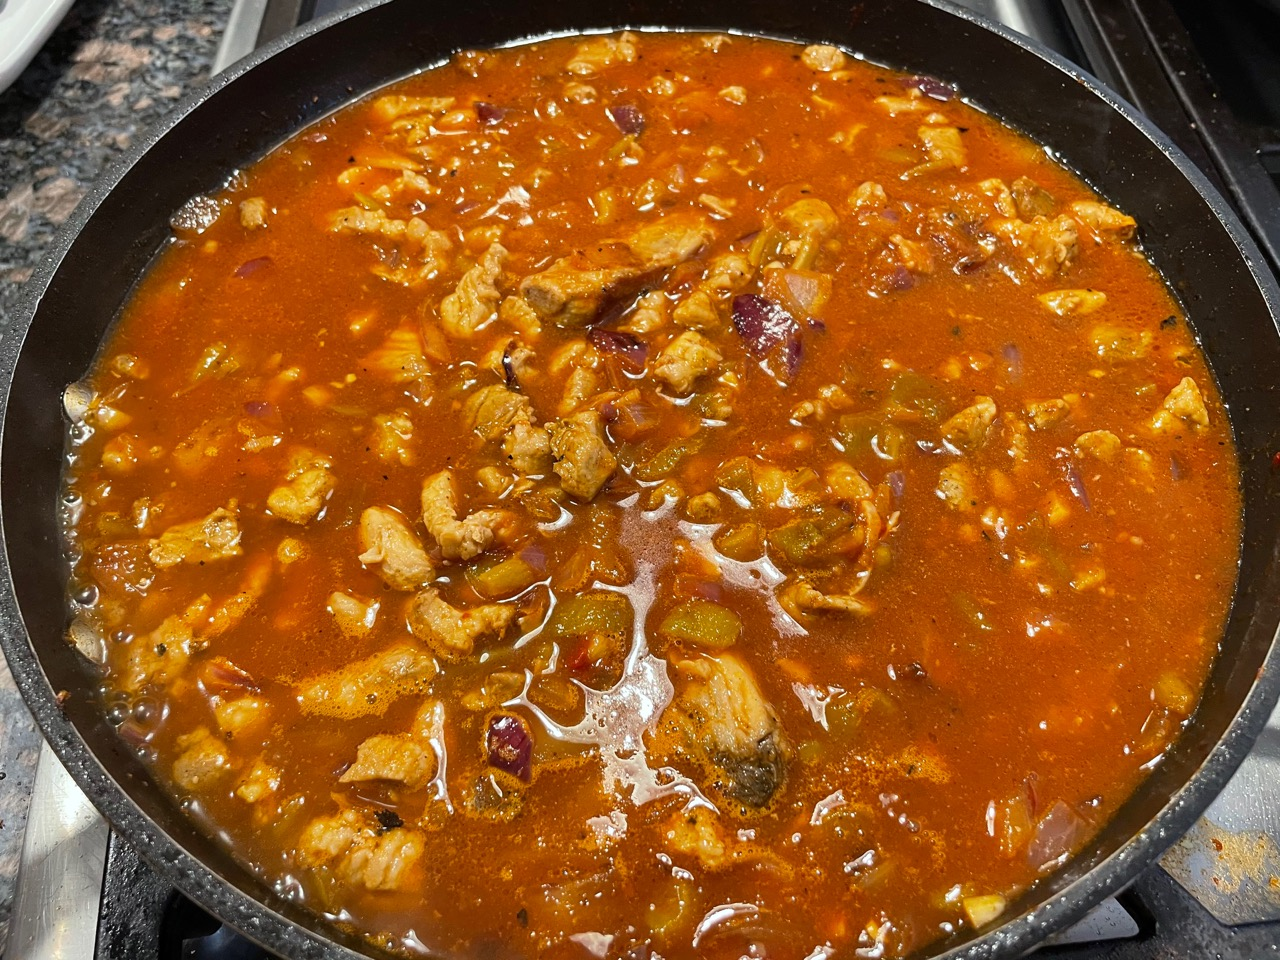 adding tomato paste to cooked meat